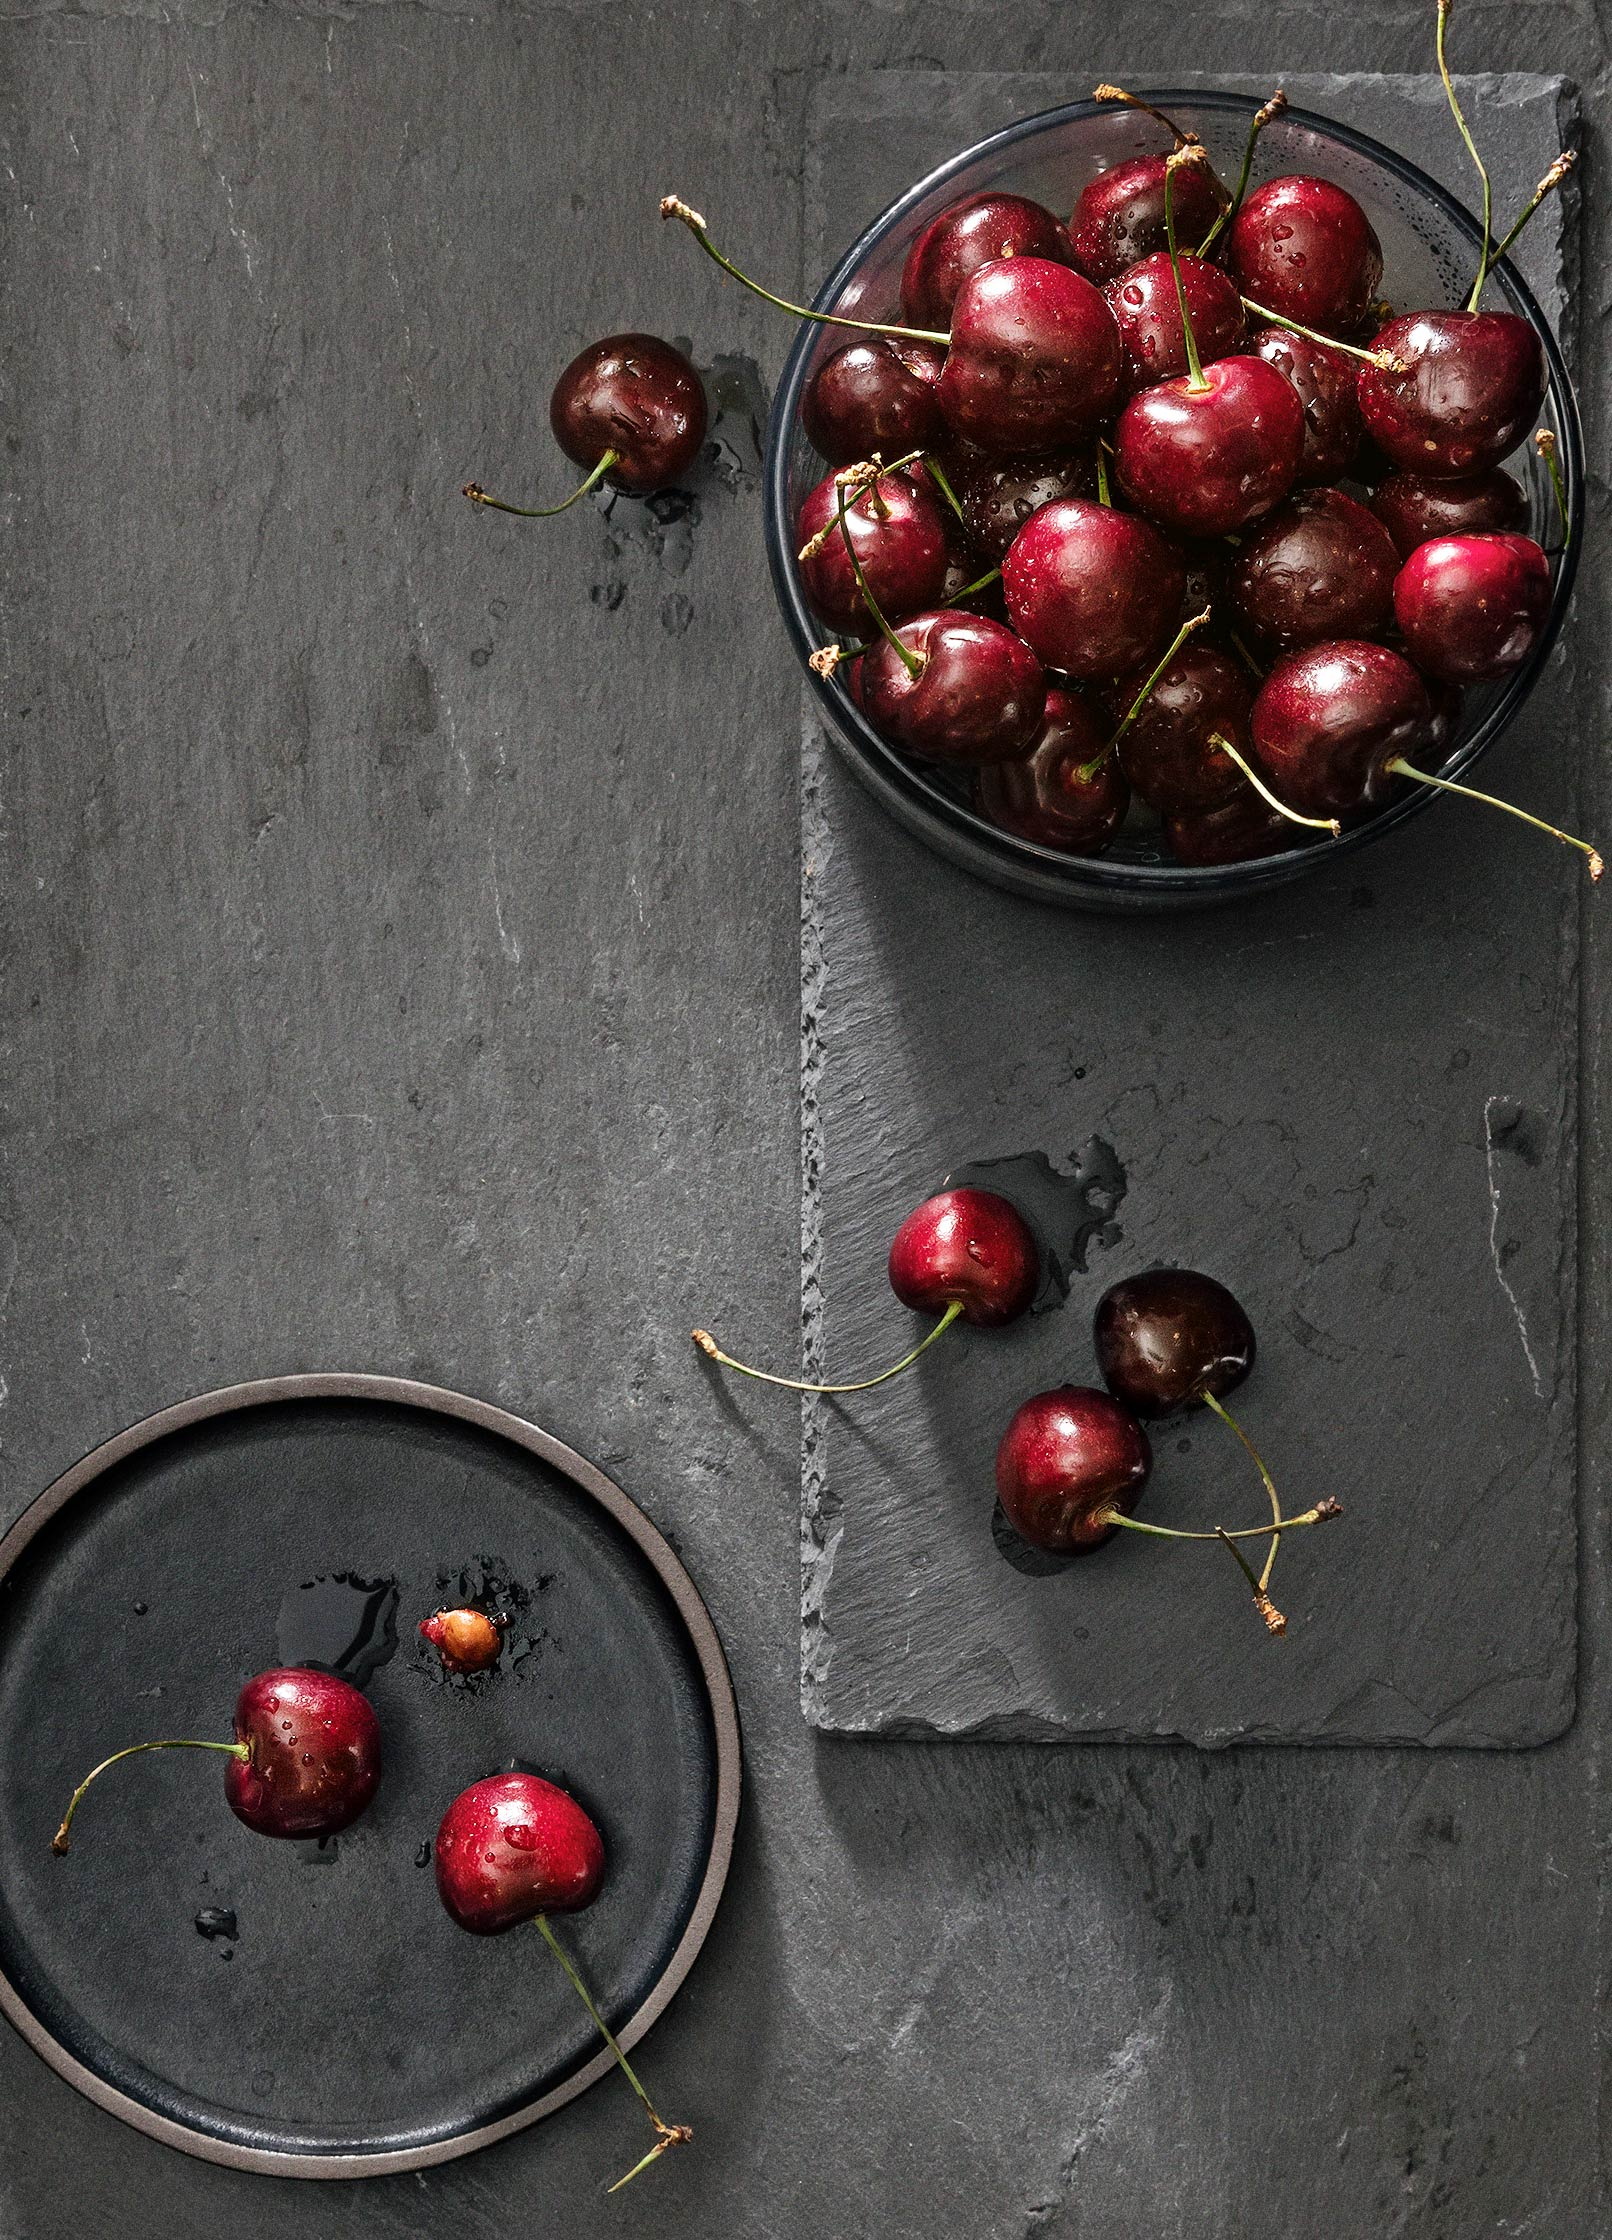 Overhead of cherry bowl with 2 cherries on a side plate on slate surface